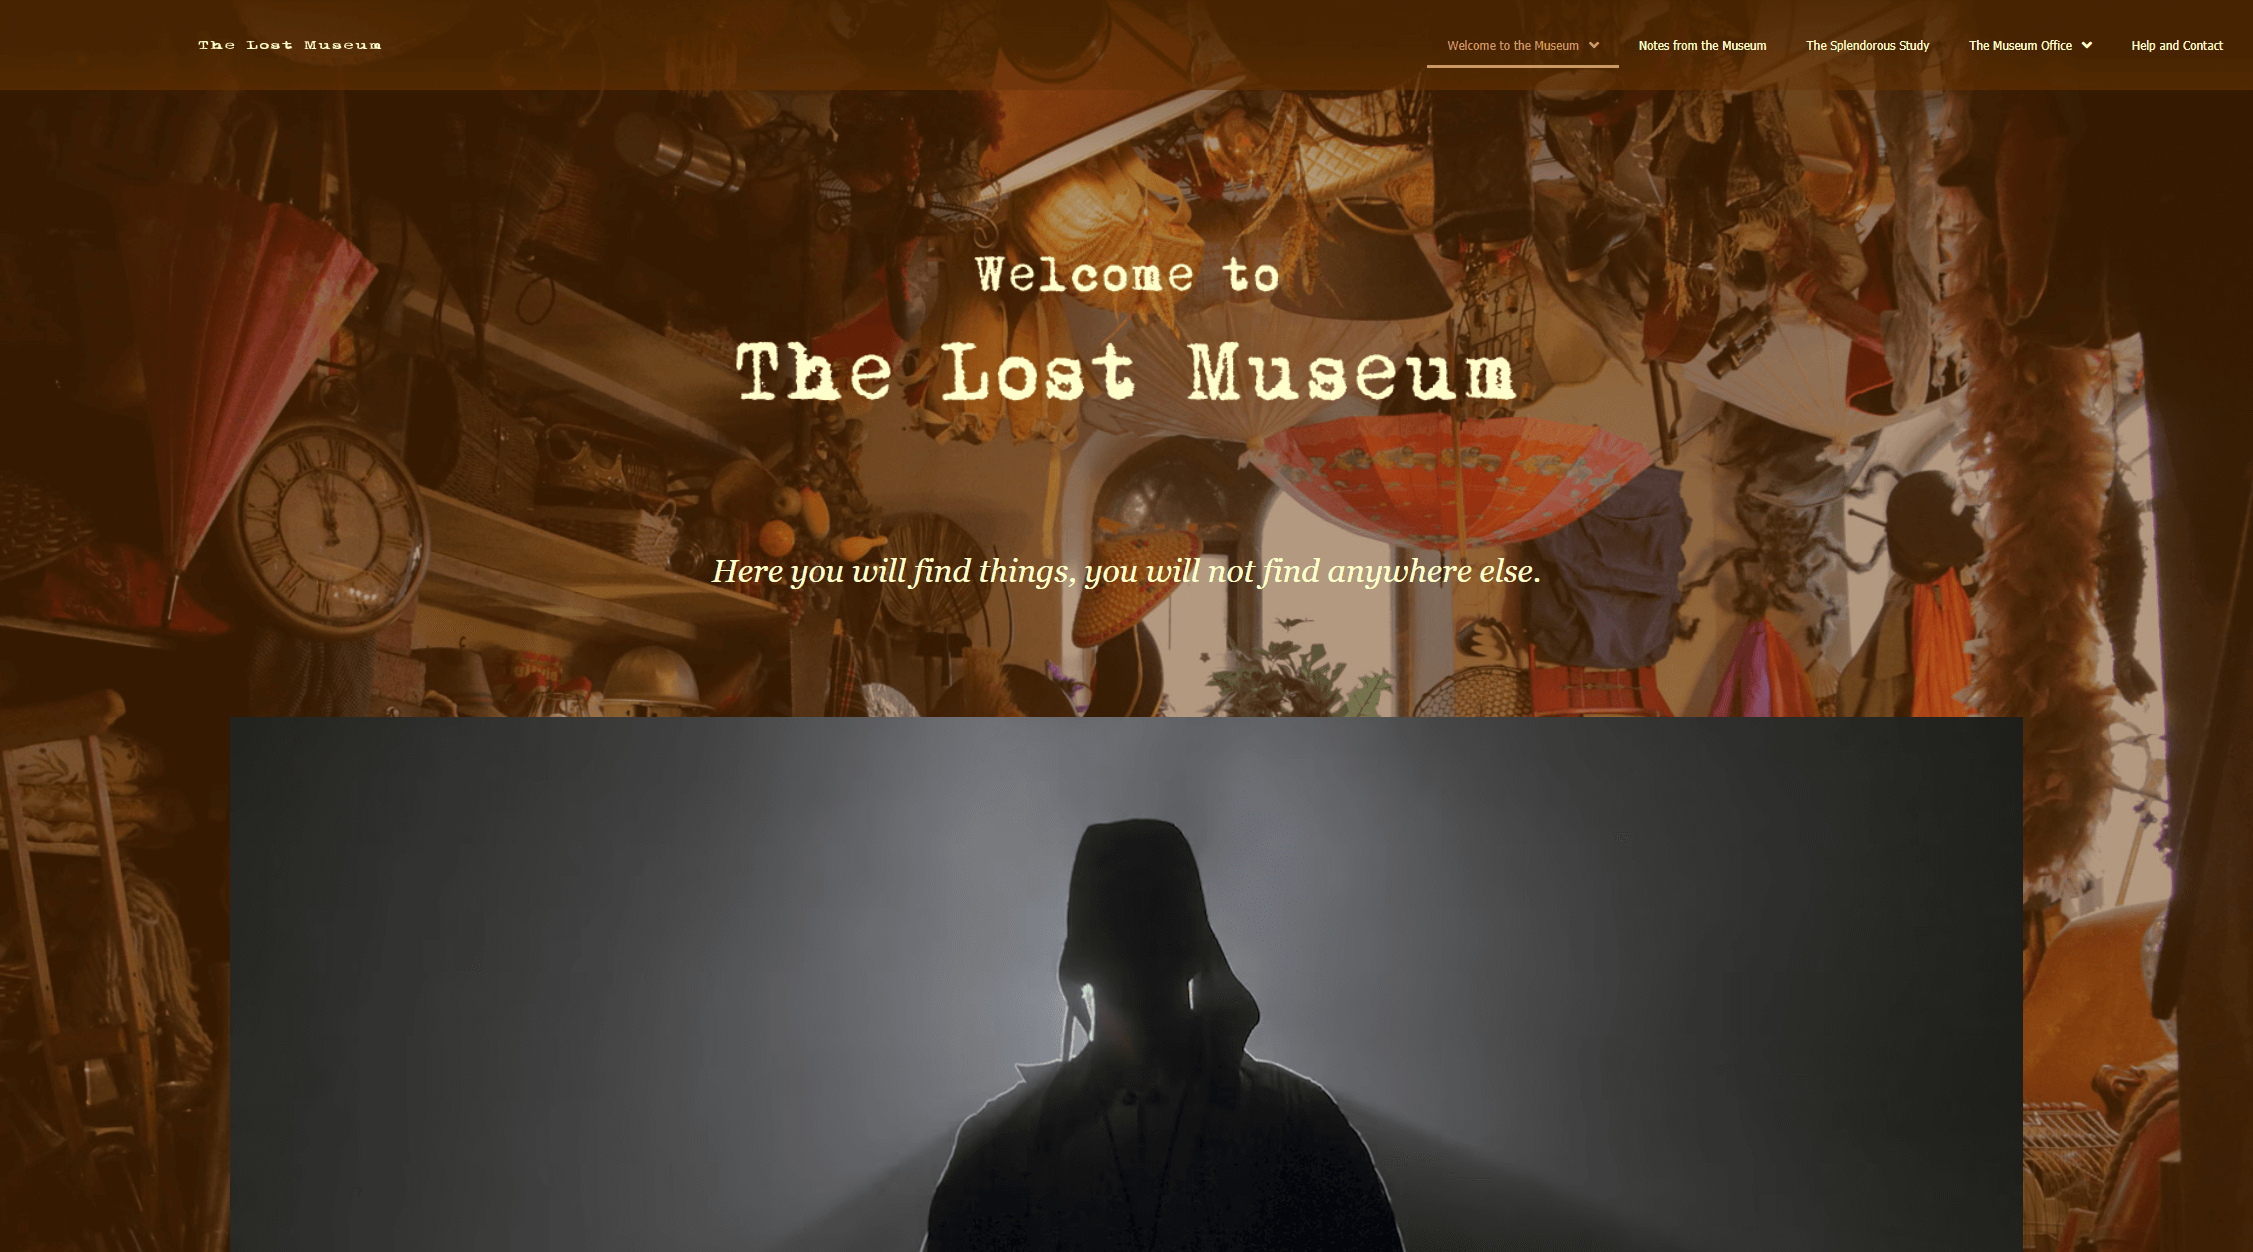 thelostmuseum.ca